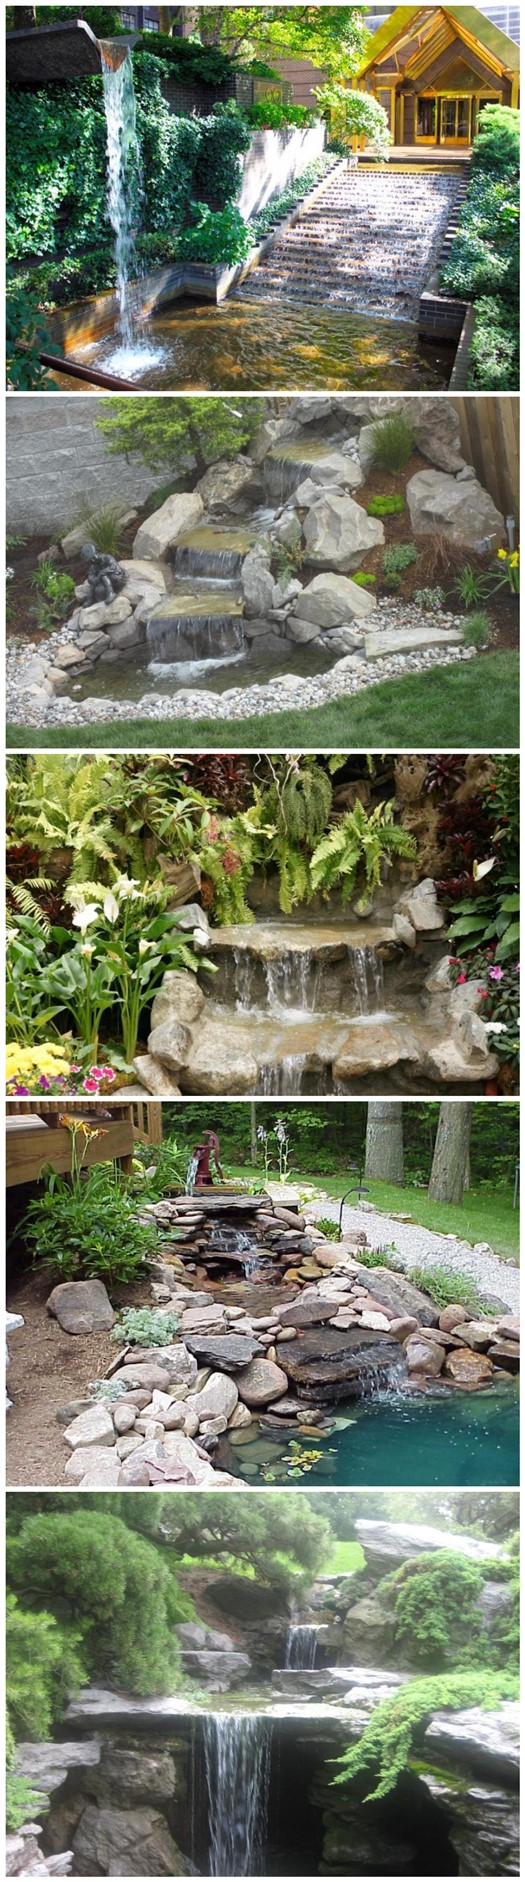 How to build a garden waterfall pond 3 diy tag for Diy small pond with waterfall